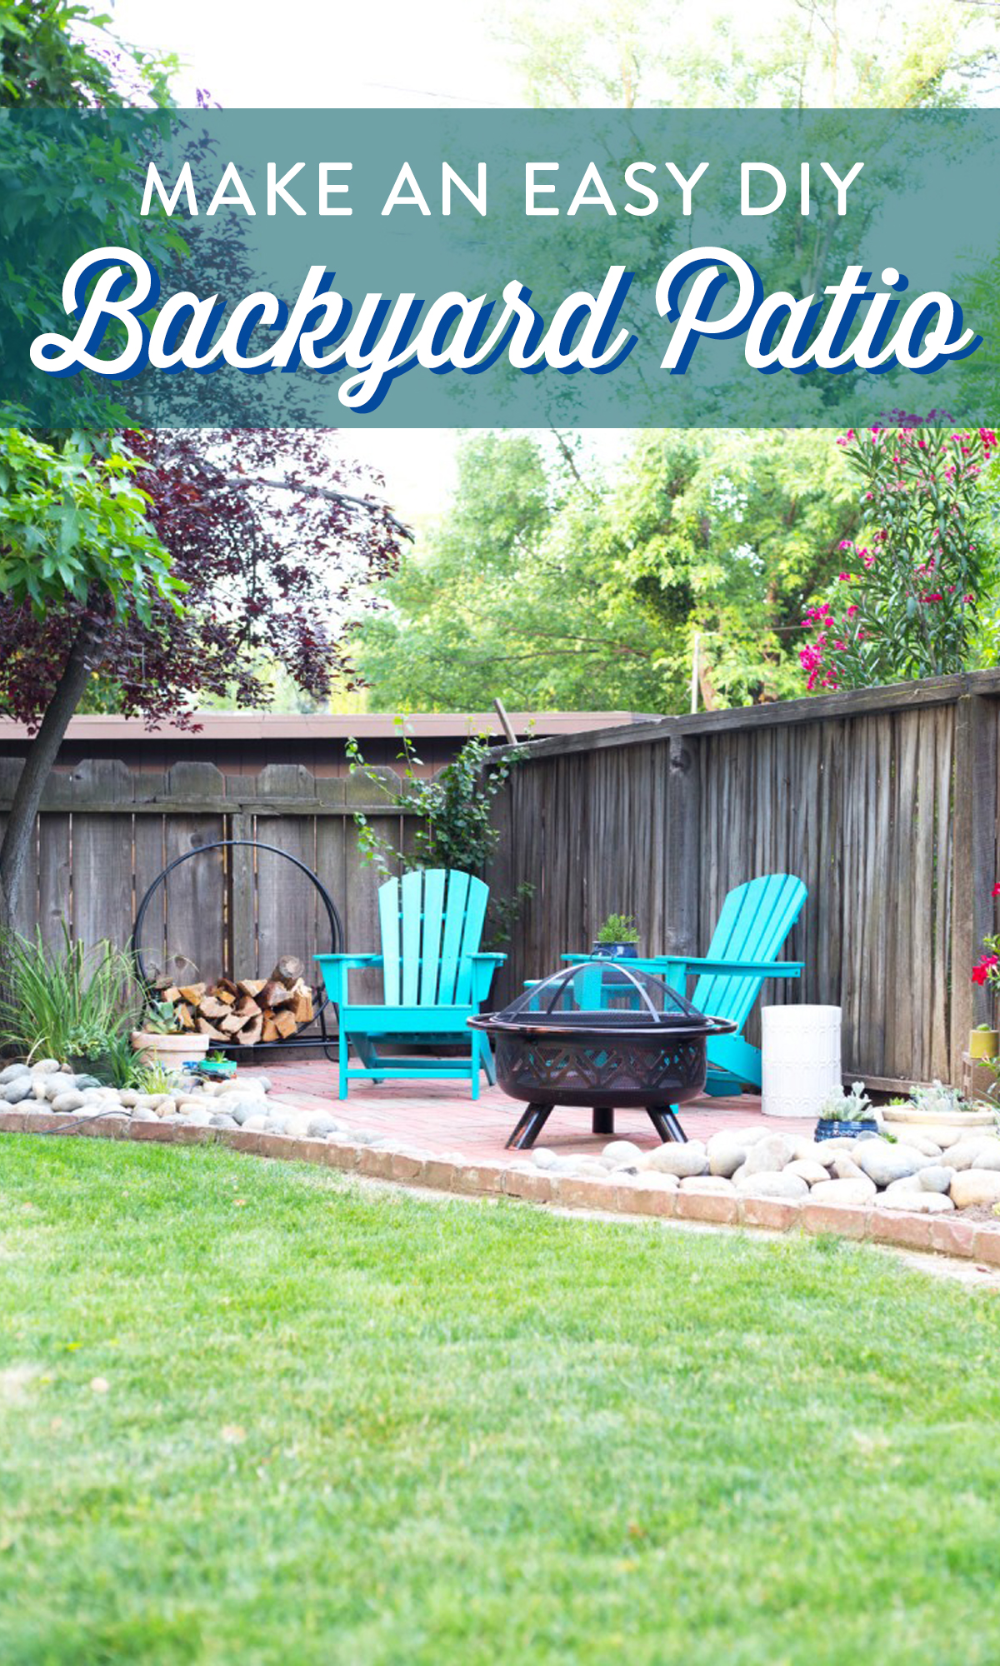 DIY Backyard Patio is part of Small backyard landscaping, Diy backyard patio, Backyard makeover, Backyard landscaping designs, Backyard patio, Diy backyard - This easy DIY backyard patio is a perfect weekend project for your home! Check out the full tutorial to lay a simple brick patio and add backyard decor